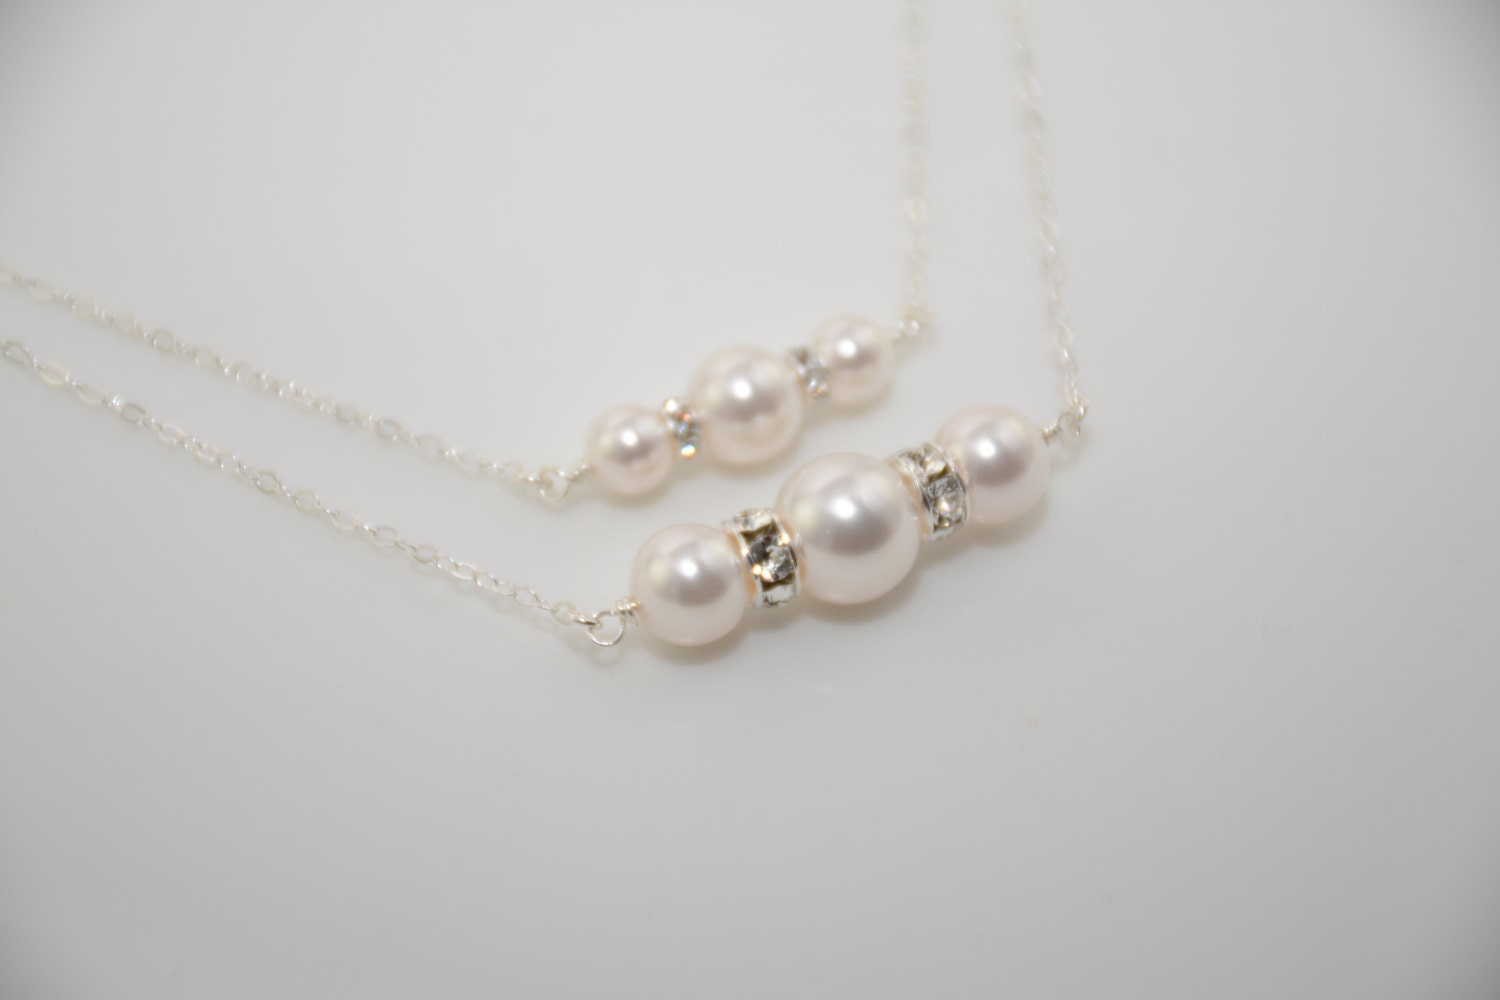 Mother daughter gift Pearl necklace set Swarovski pearls